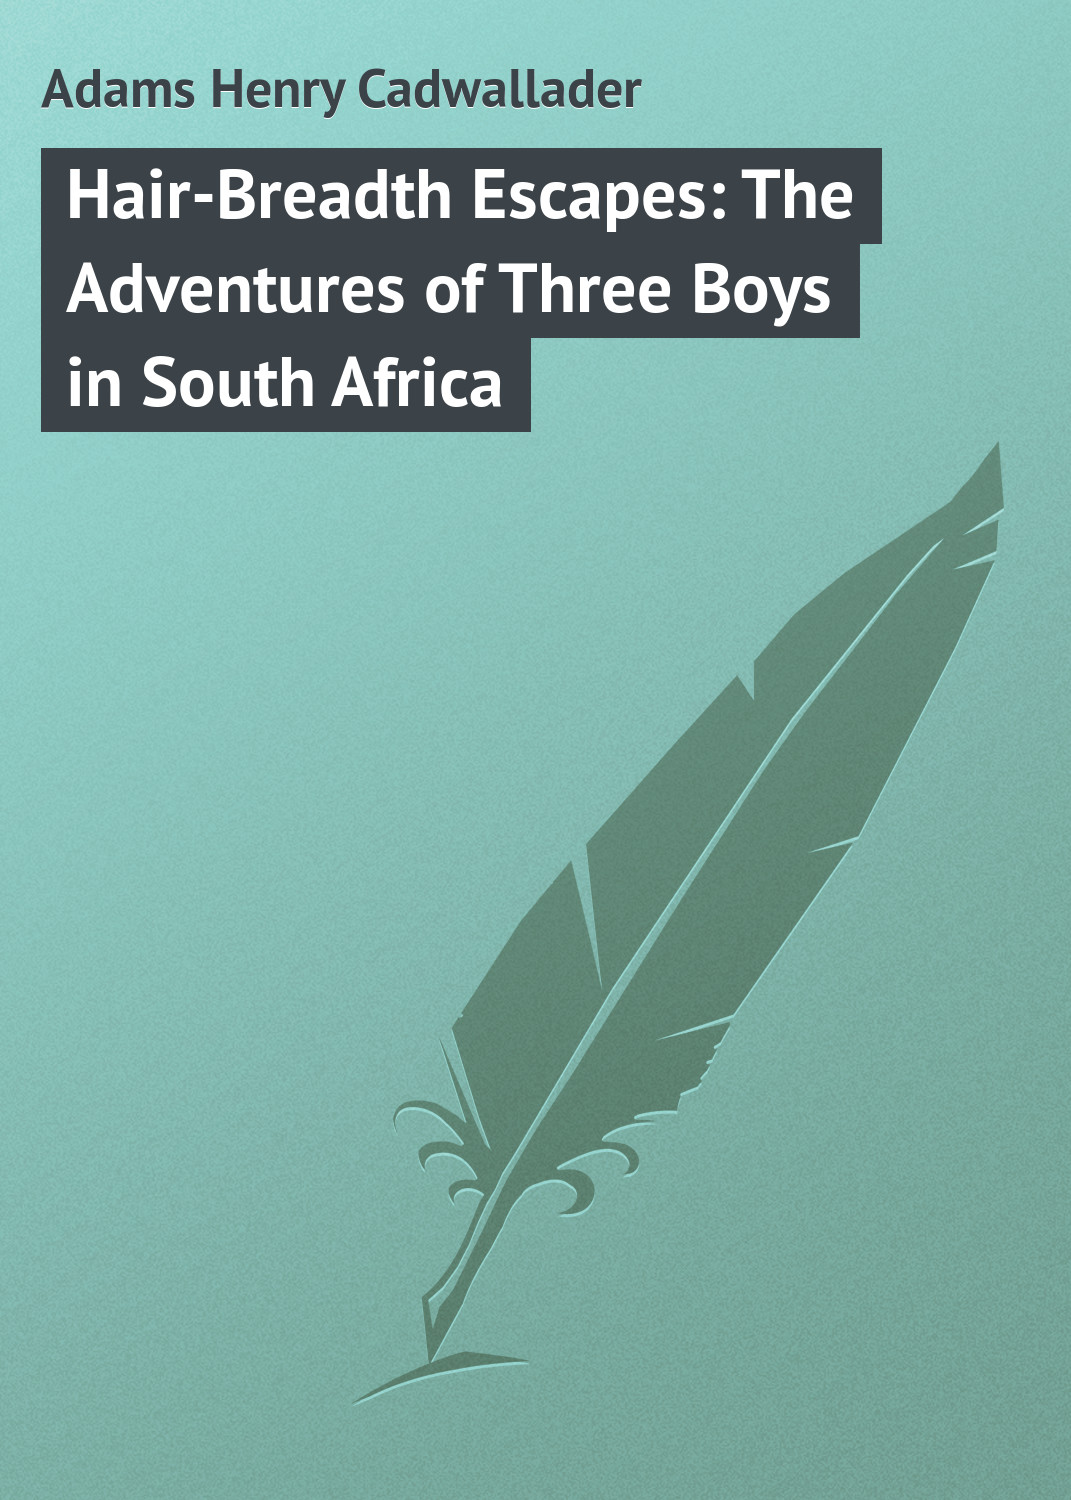 цена на Adams Henry Cadwallader Hair-Breadth Escapes: The Adventures of Three Boys in South Africa